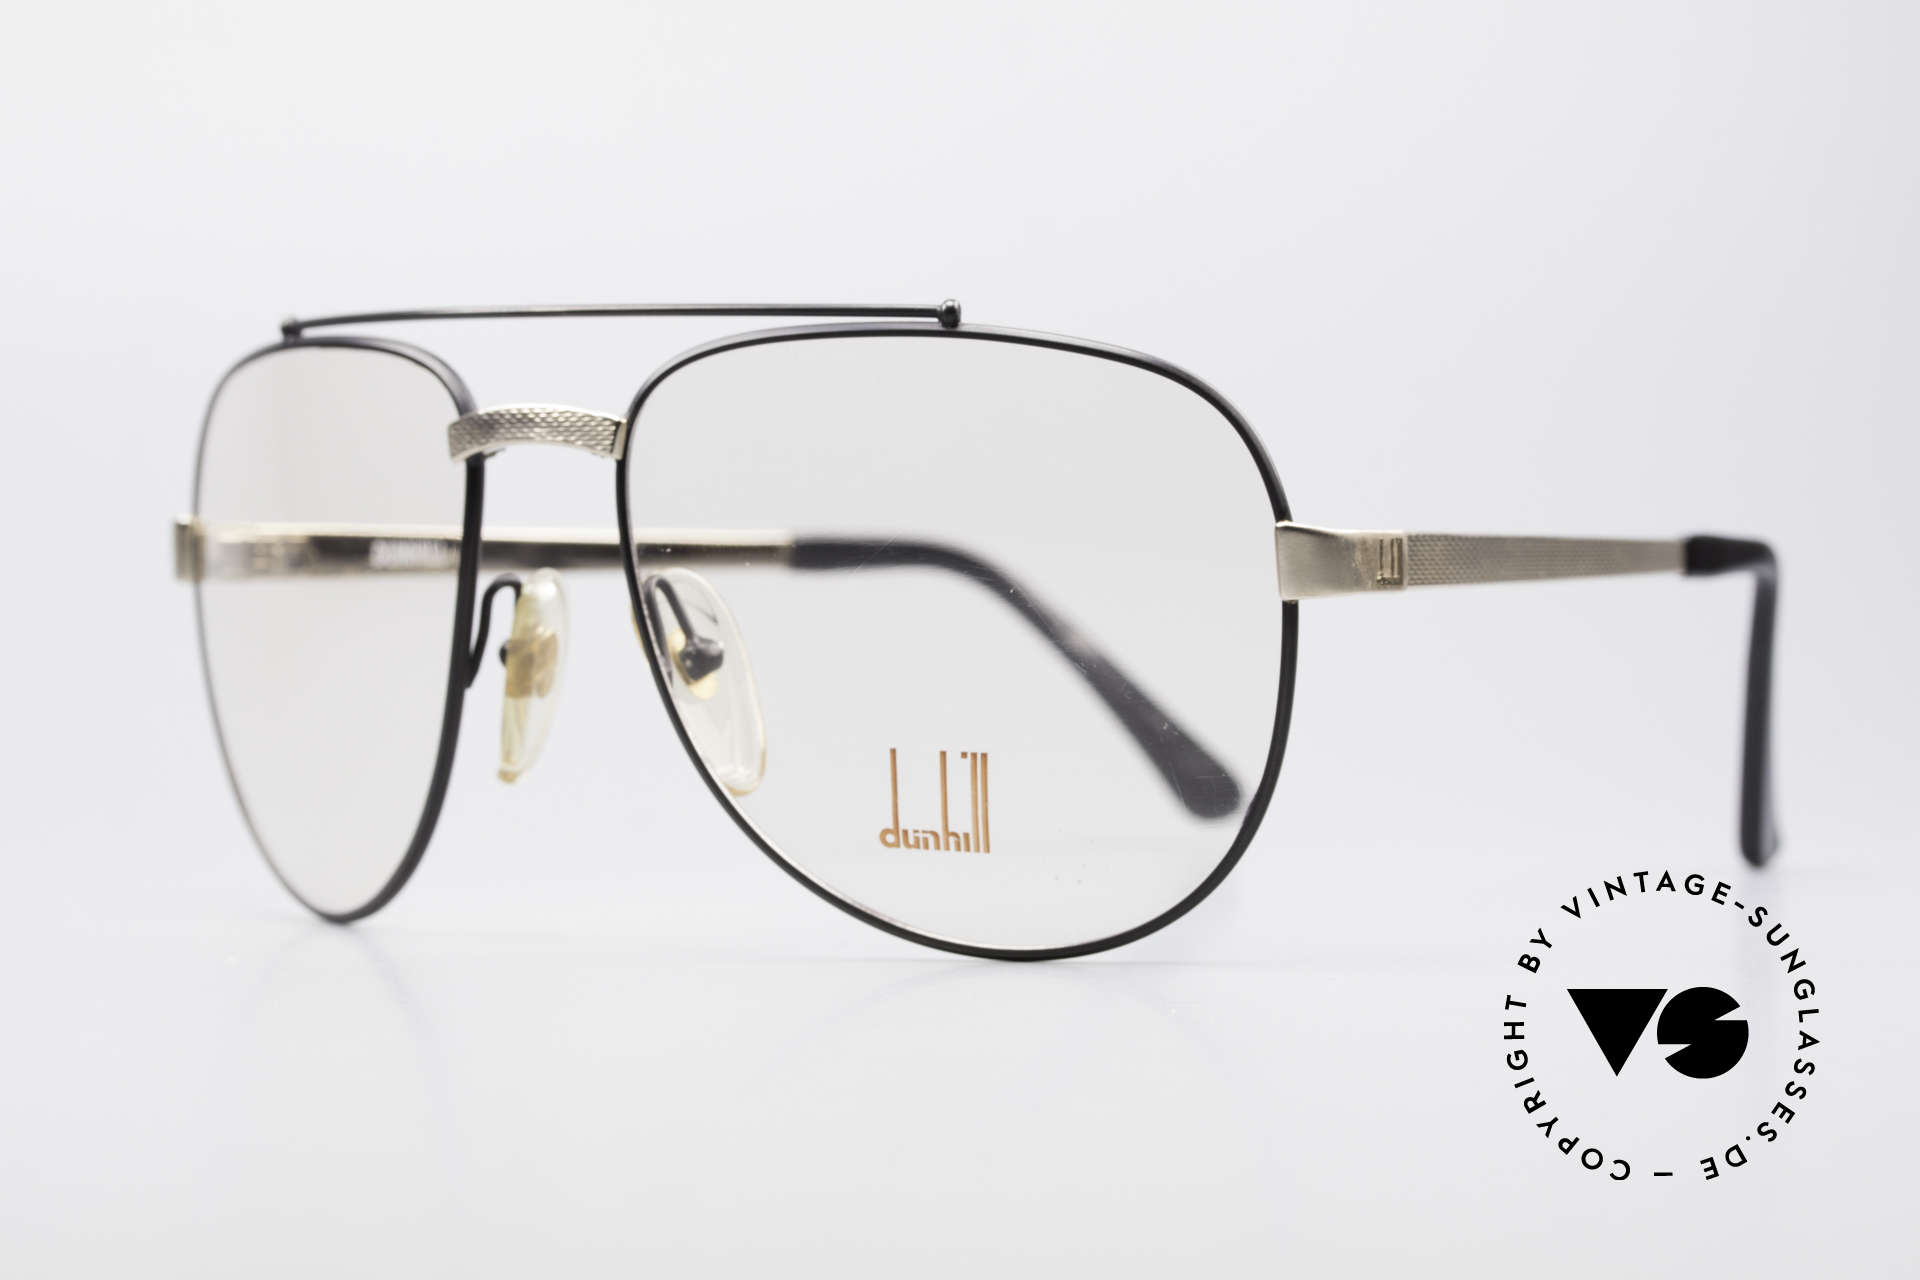 Dunhill 6029 Comfort Fit Luxury Eyeglasses, gold-plated & BARLEY: hundreds of minute facets, Made for Men